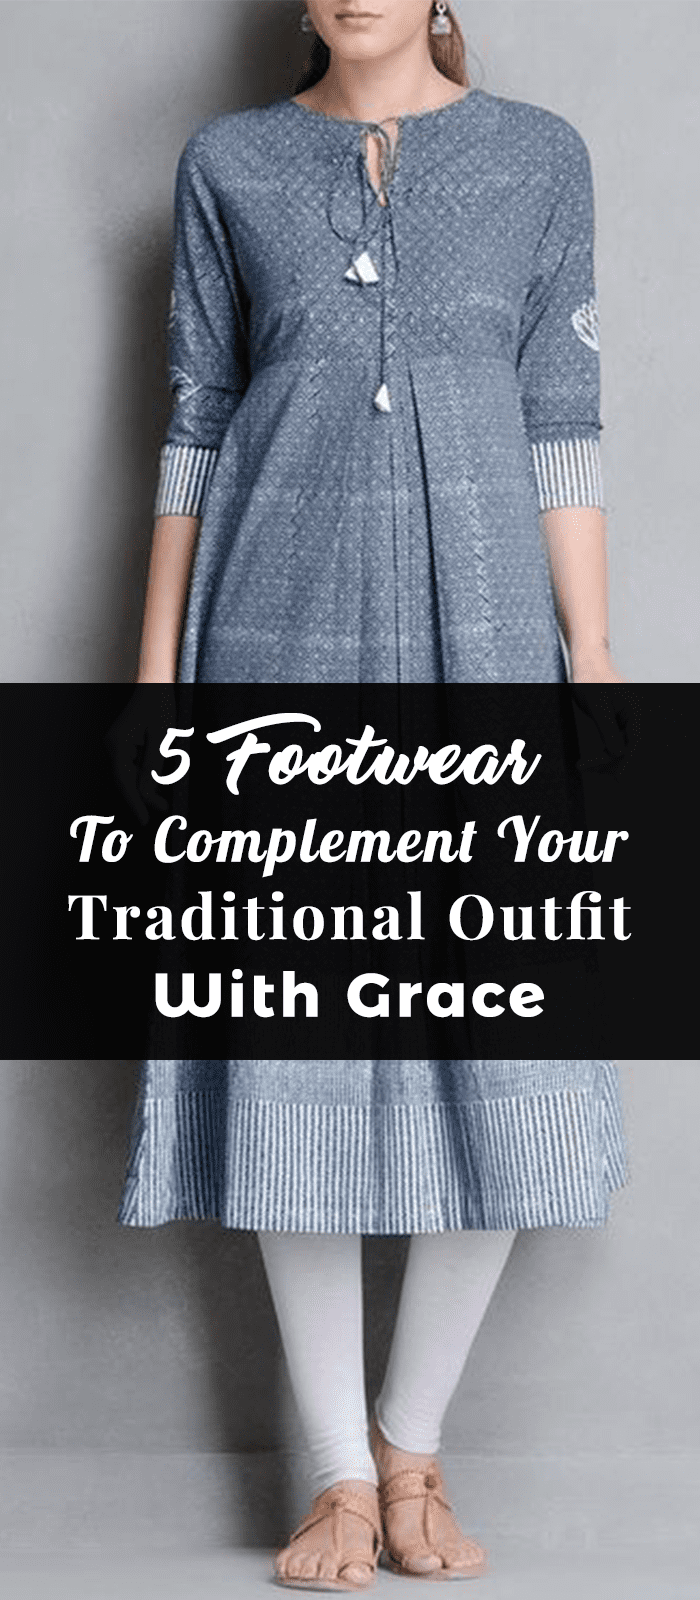 5 Footwear To Complement Your Traditional Outfit With Grace